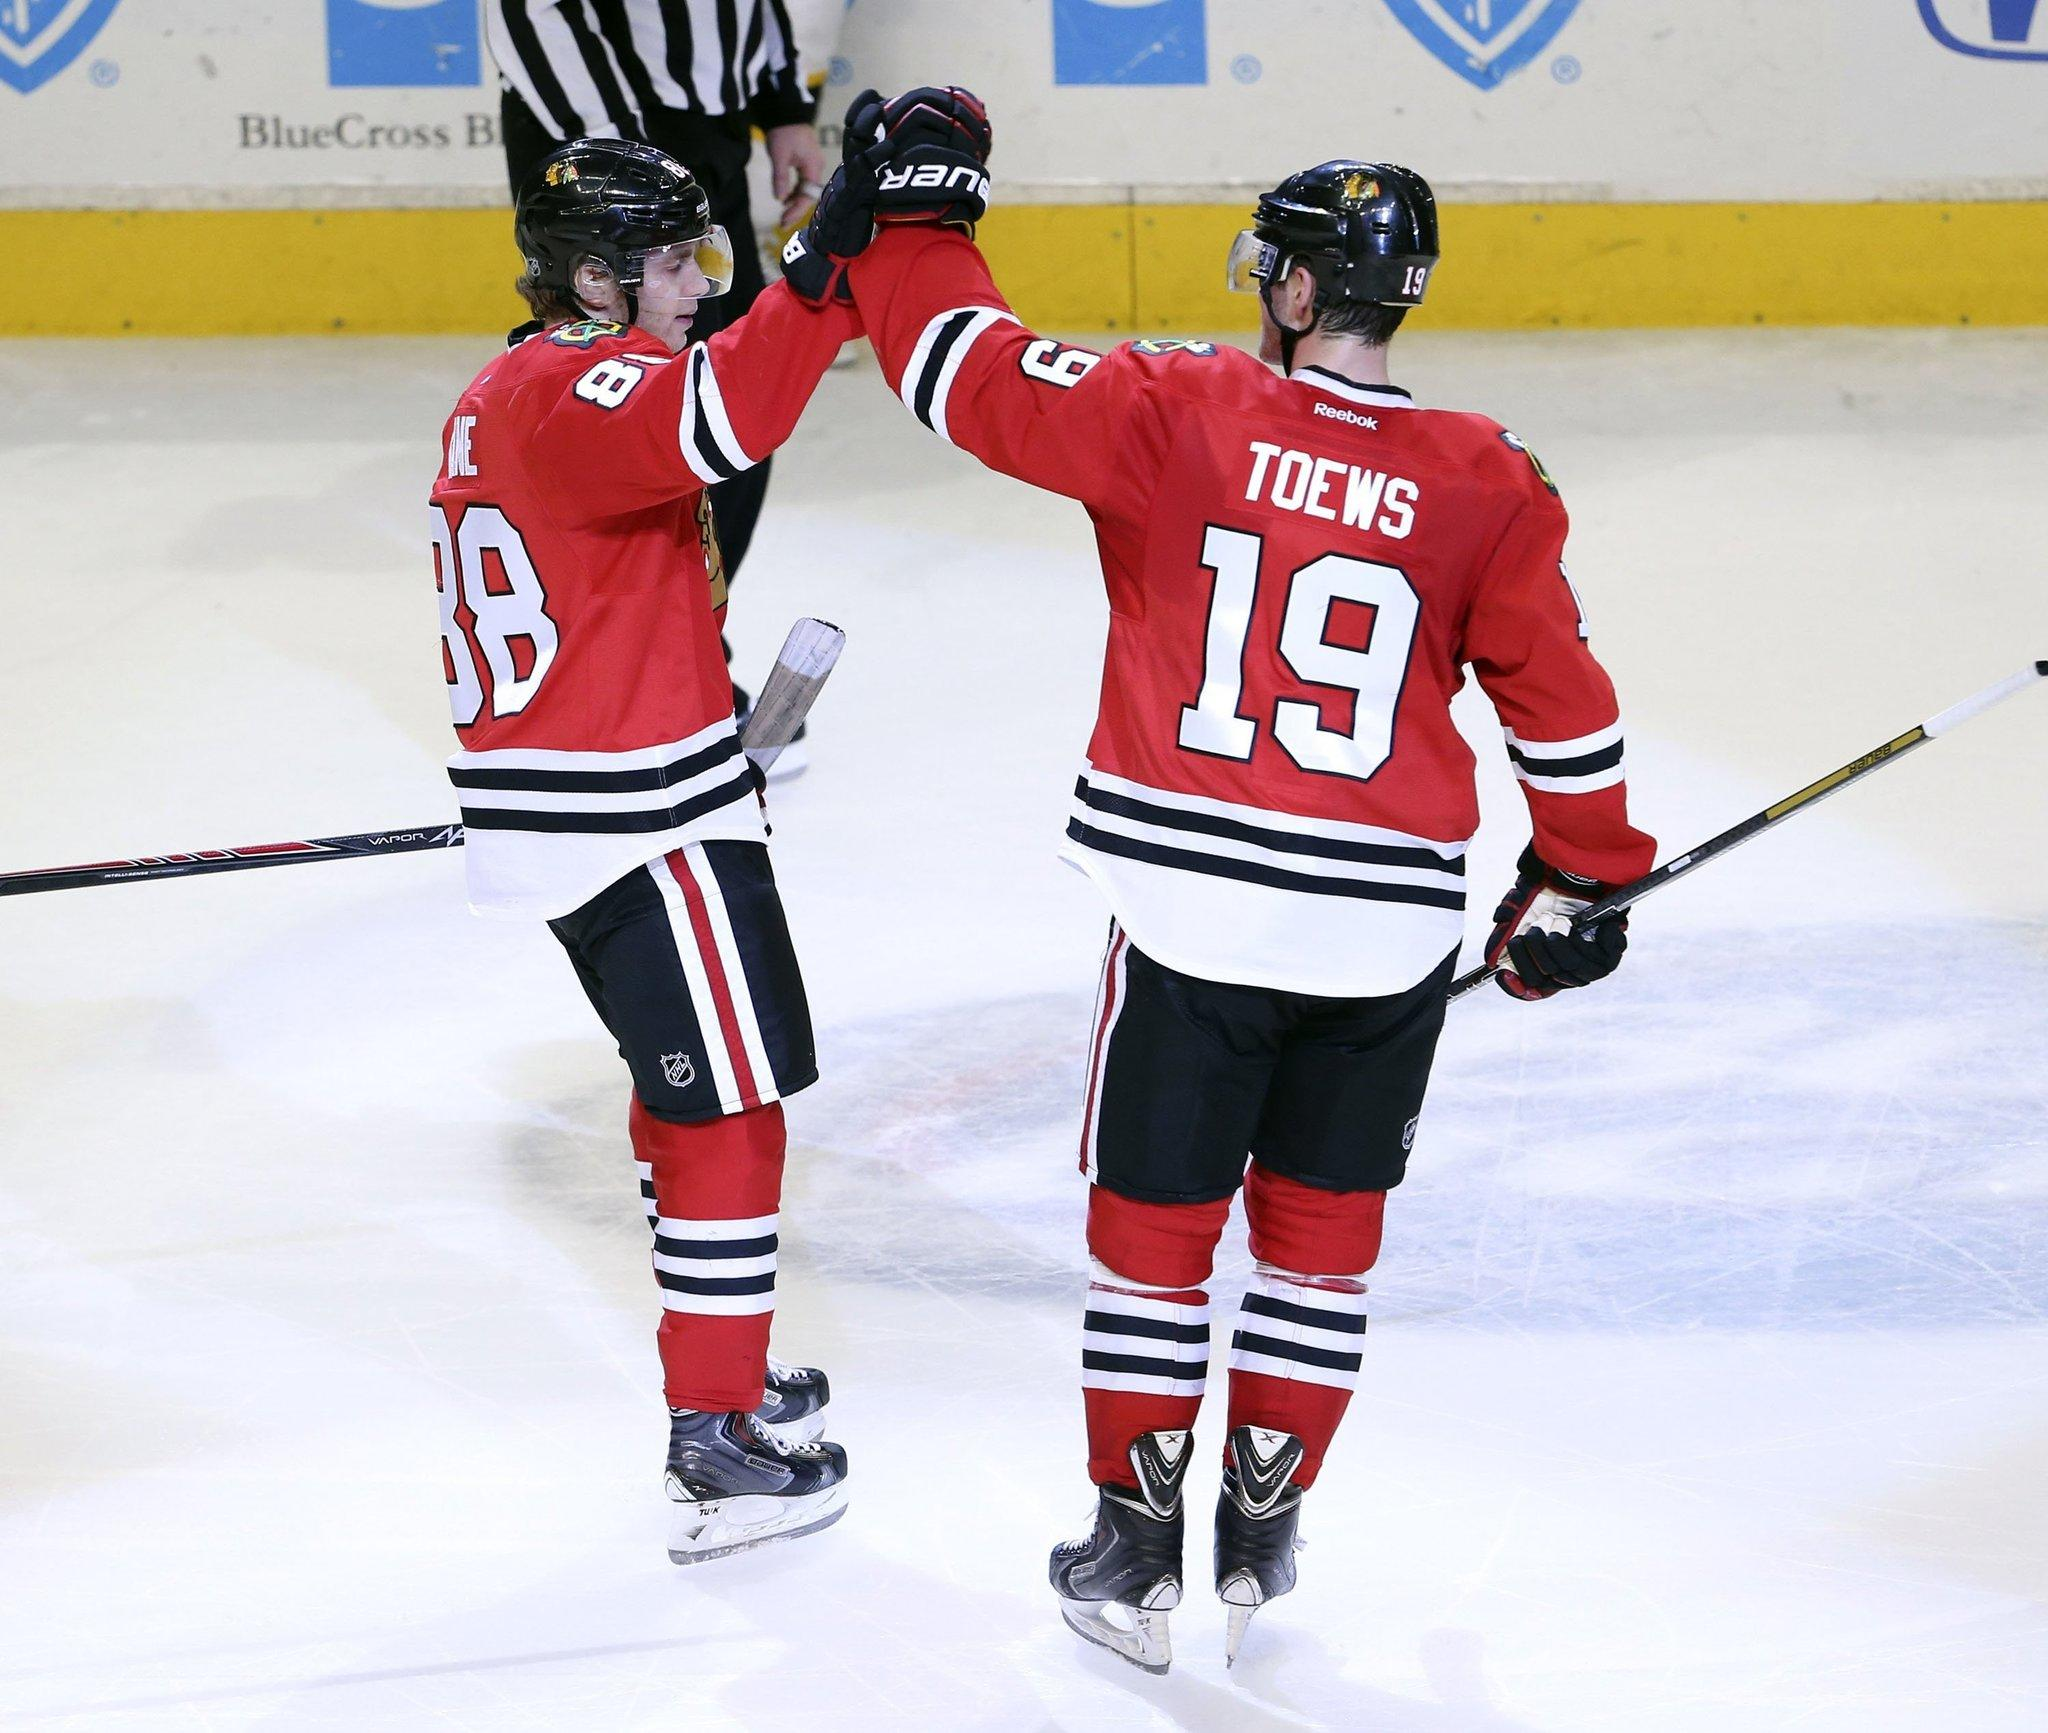 Chicago Blackhawks right wing Patrick Kane (88), left, celebrates with Blackhawks center Jonathan Toews (19) after his goal against the Boston Bruins during the shootout at the United Center in Chicago on Sunday, Jan. 19, 2014. The Blackhawks defeated the Bruins, 3-2.